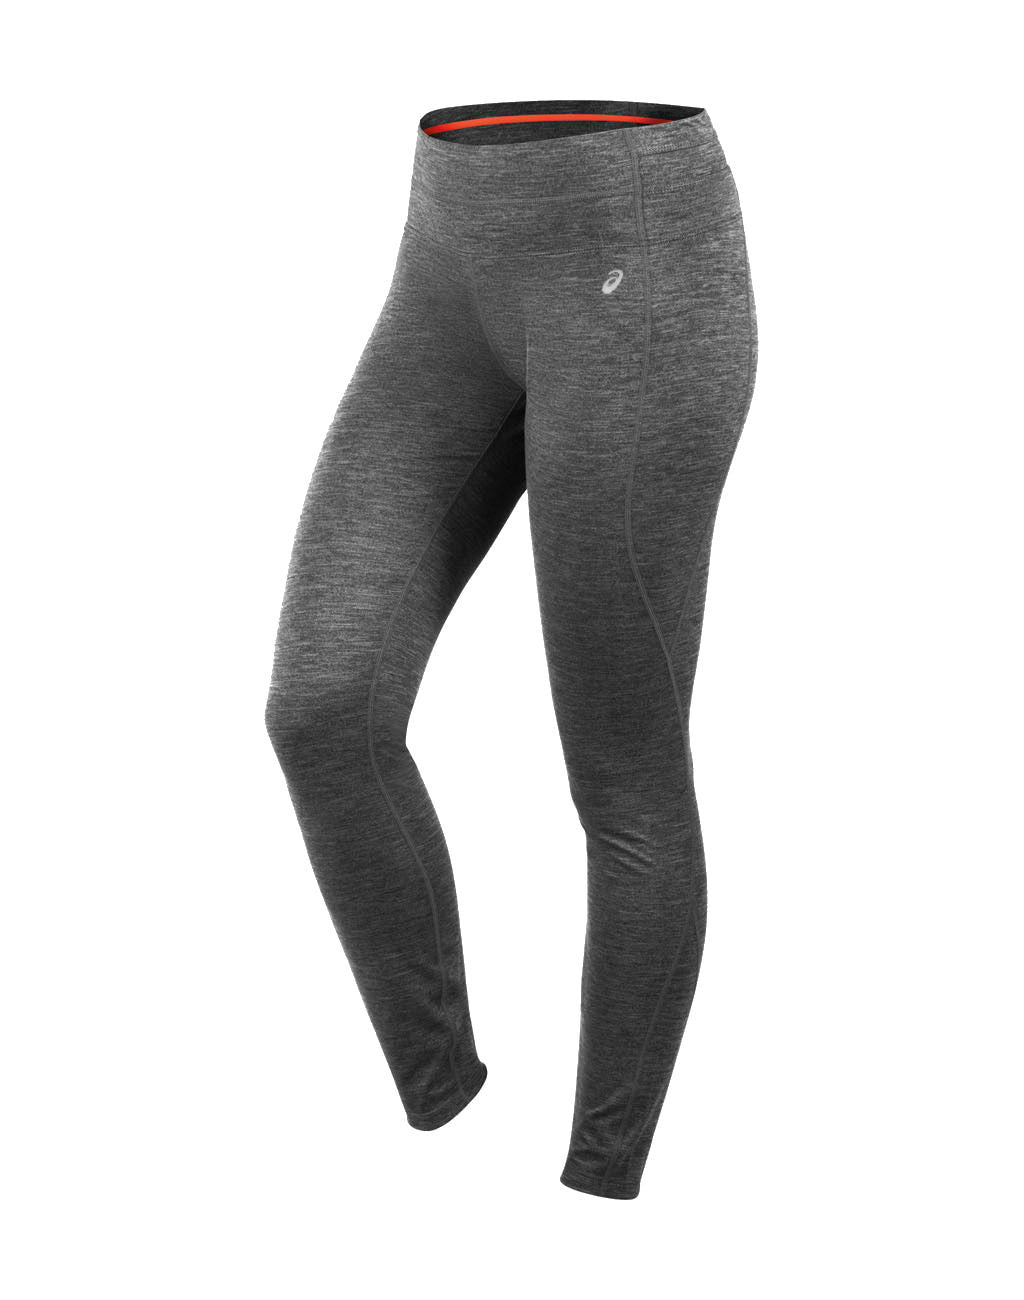 ASICS Thermopolis Tight (Women's)XS_master_image